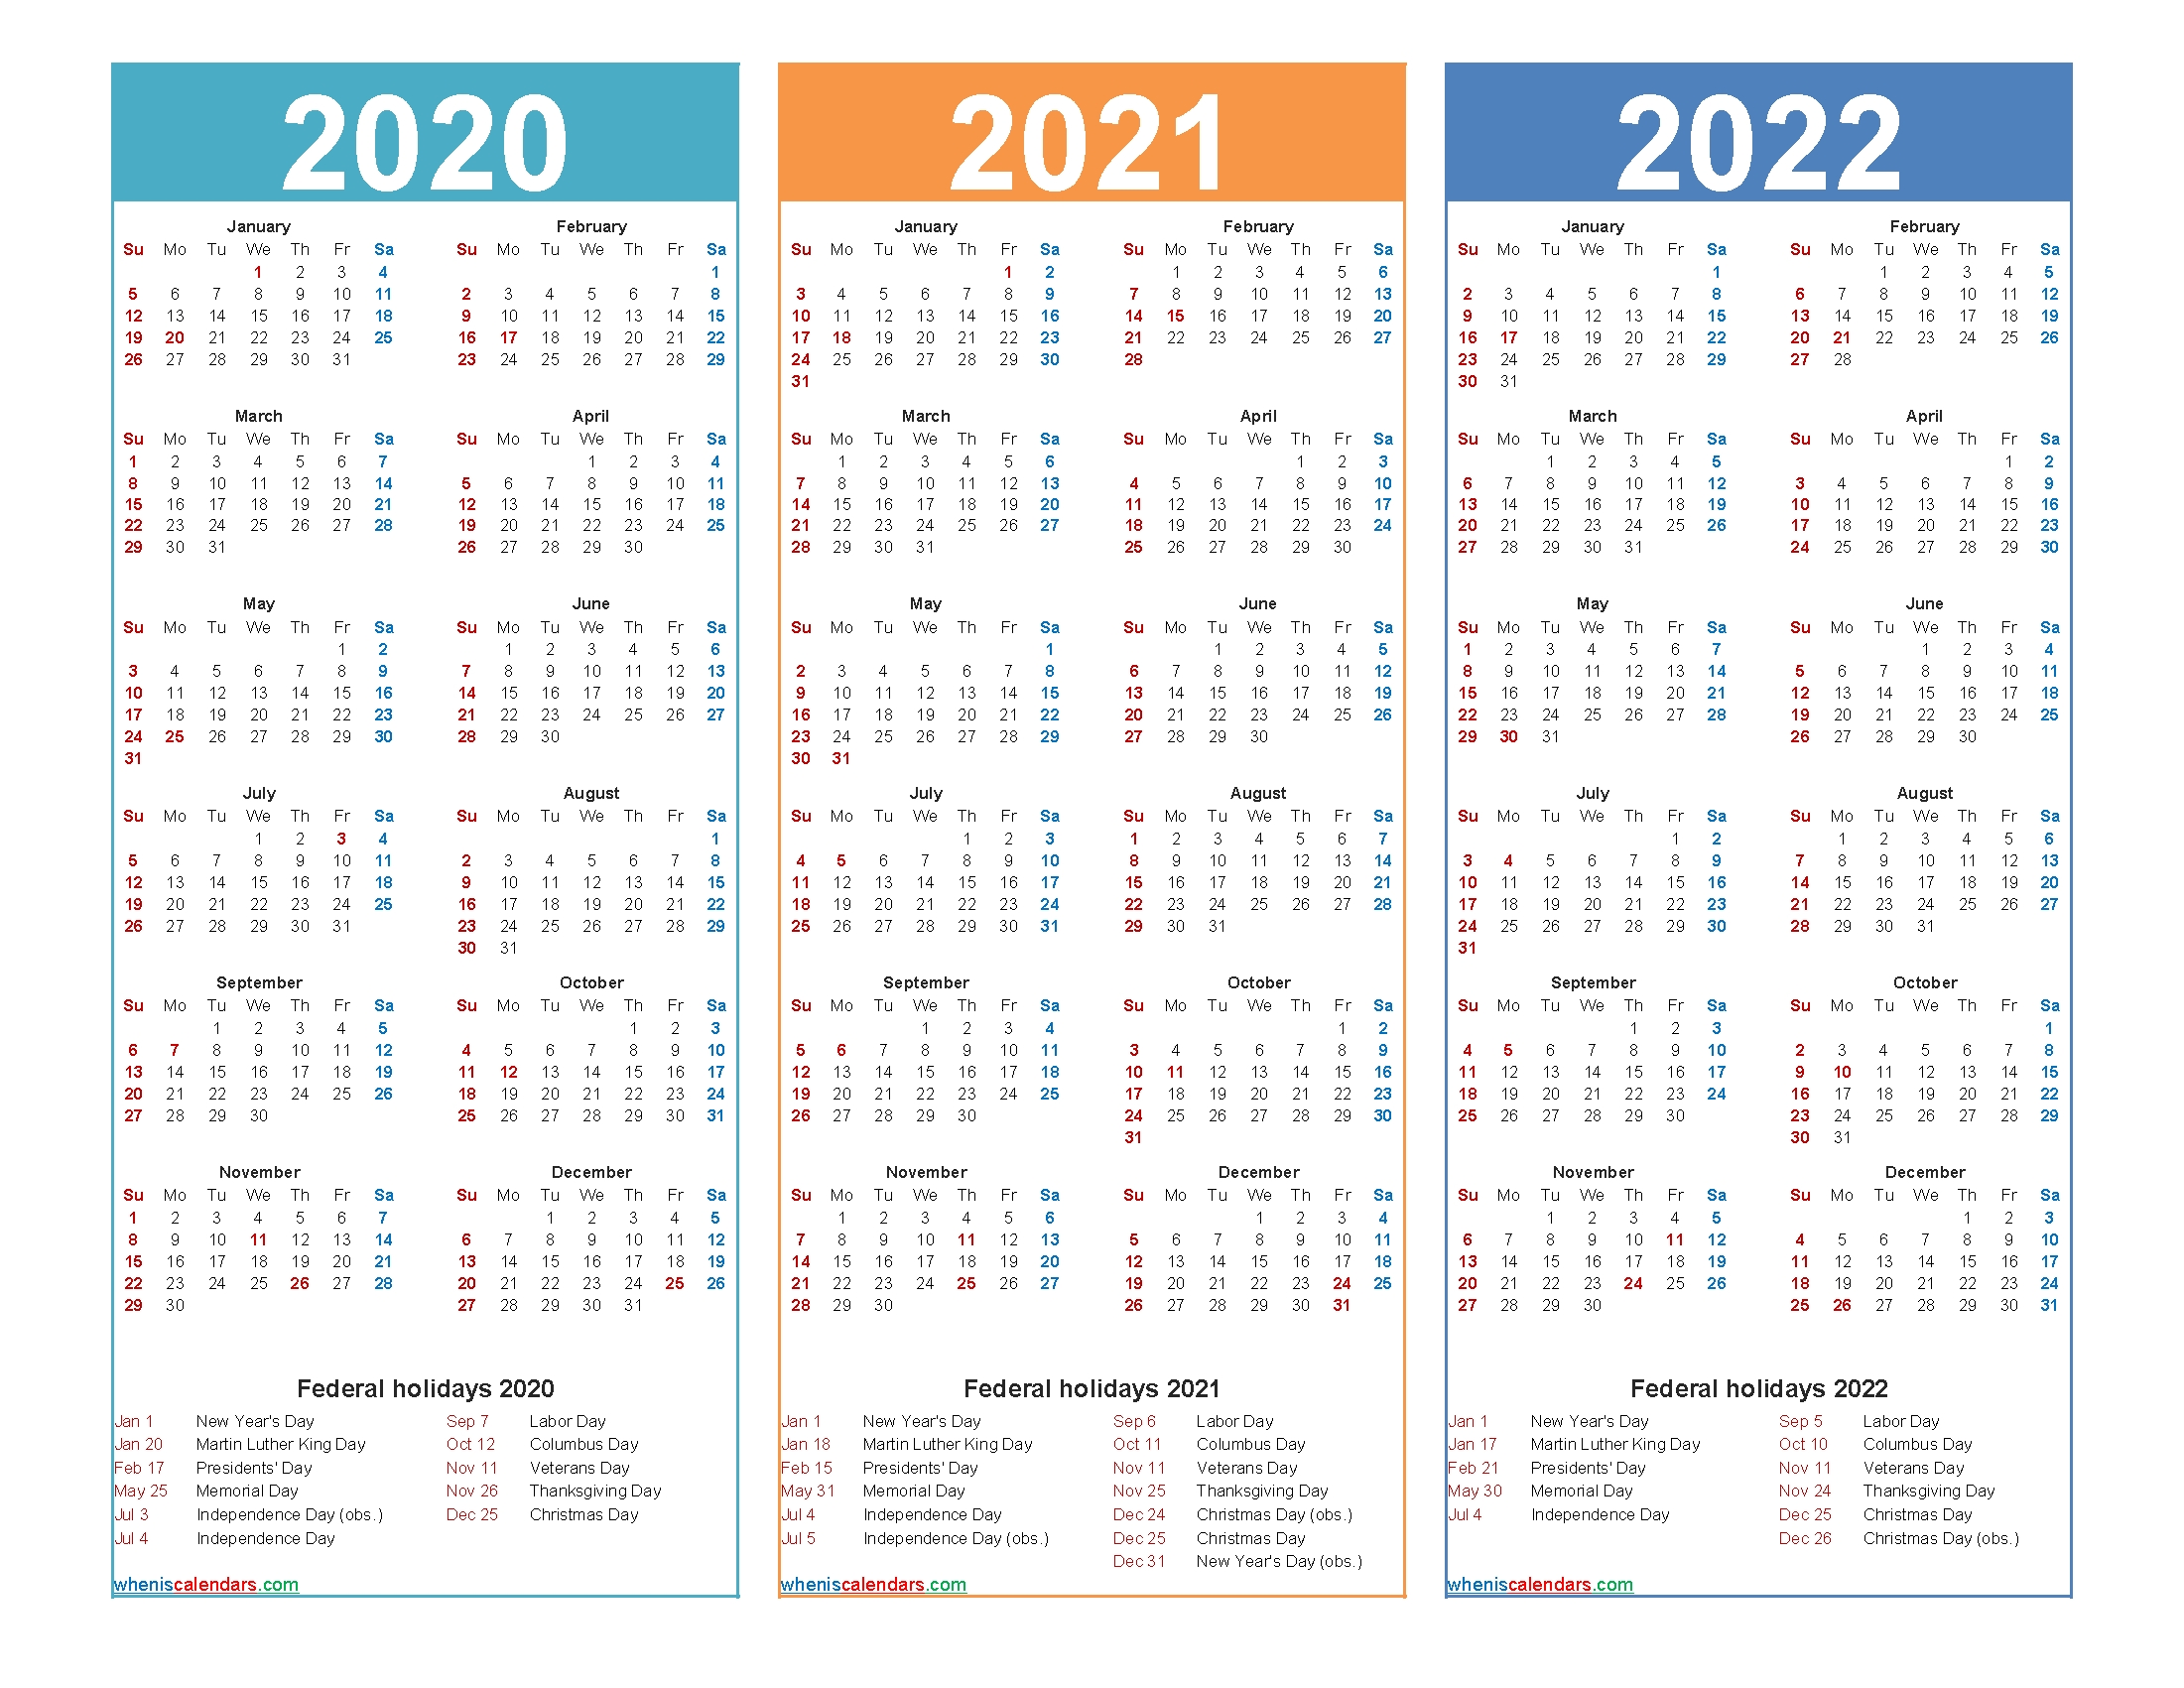 Calendars In 2020 2021 And 2022 - Calendar Inspiration Design